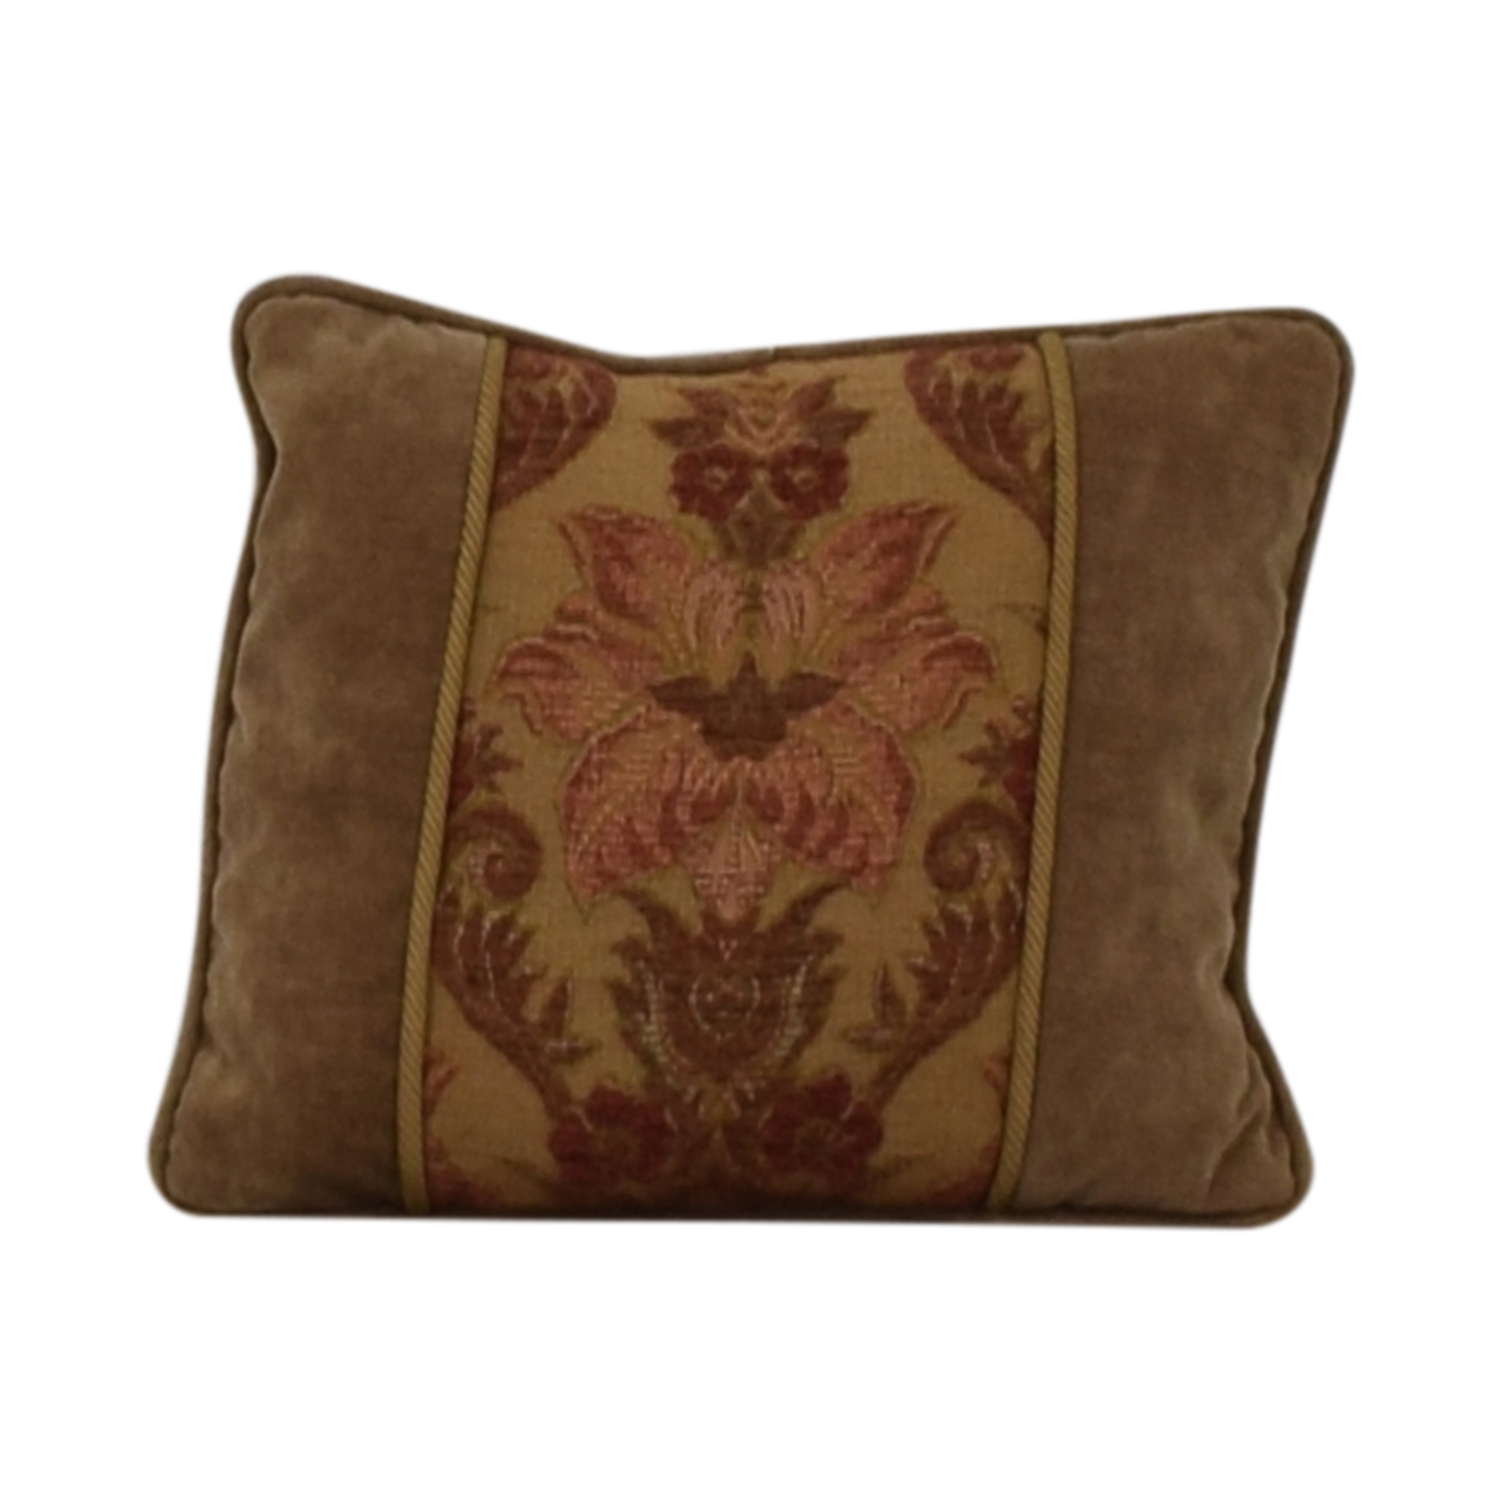 Custom Made Beige Multi-Colored Decorative Pillow / Decorative Accents